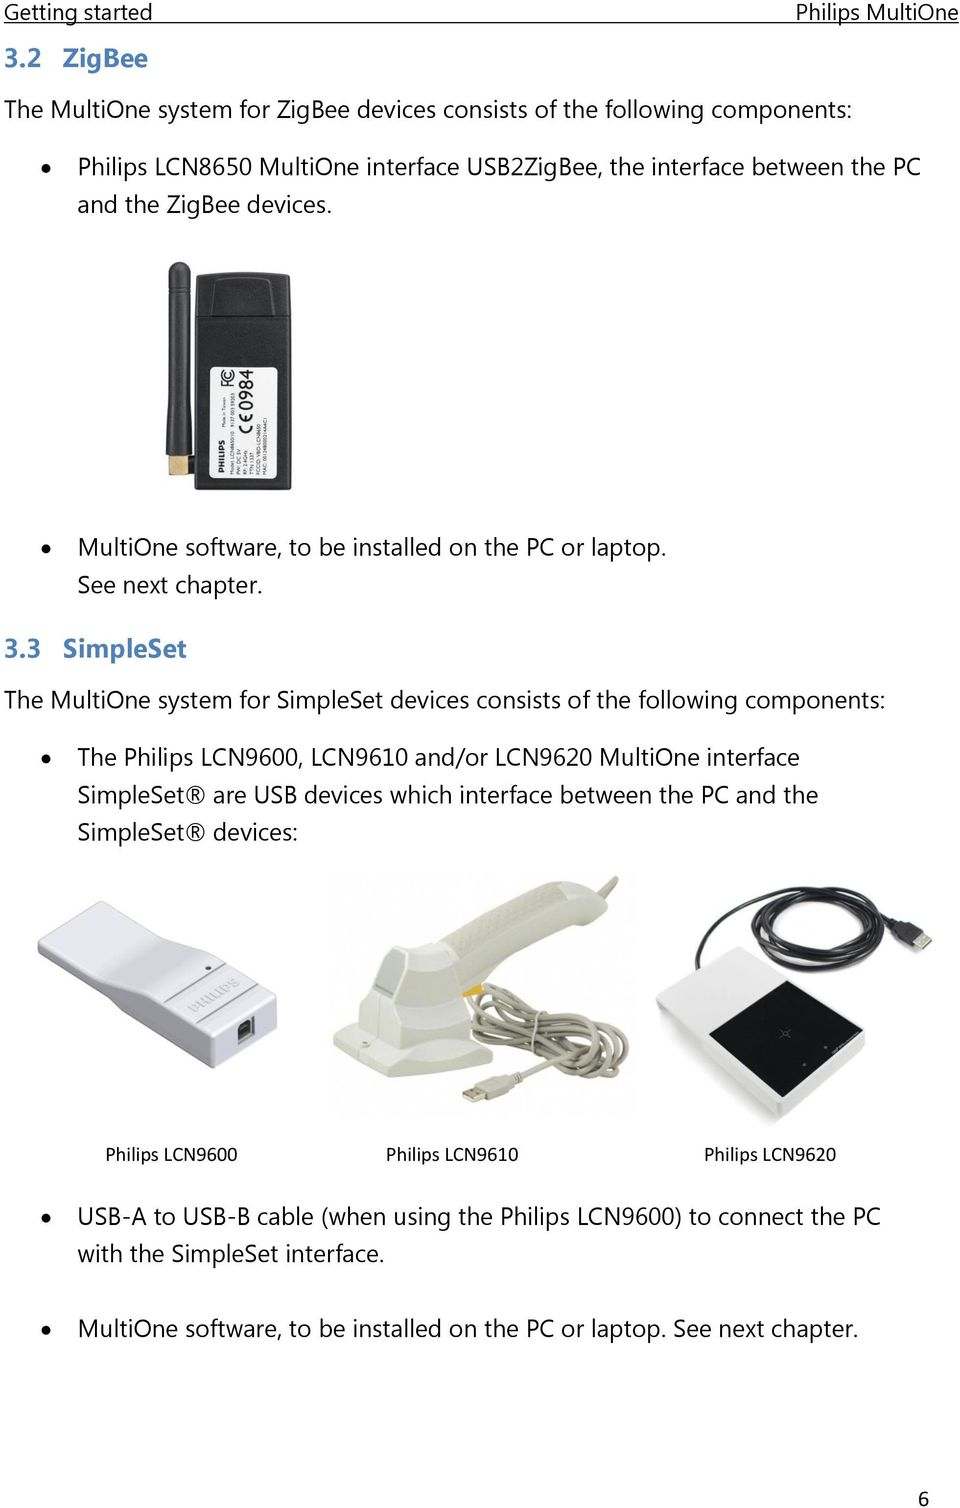 3 SimpleSet The MultiOne system for SimpleSet devices consists of the following components: The Philips LCN9600, LCN9610 and/or LCN9620 MultiOne interface SimpleSet are USB devices